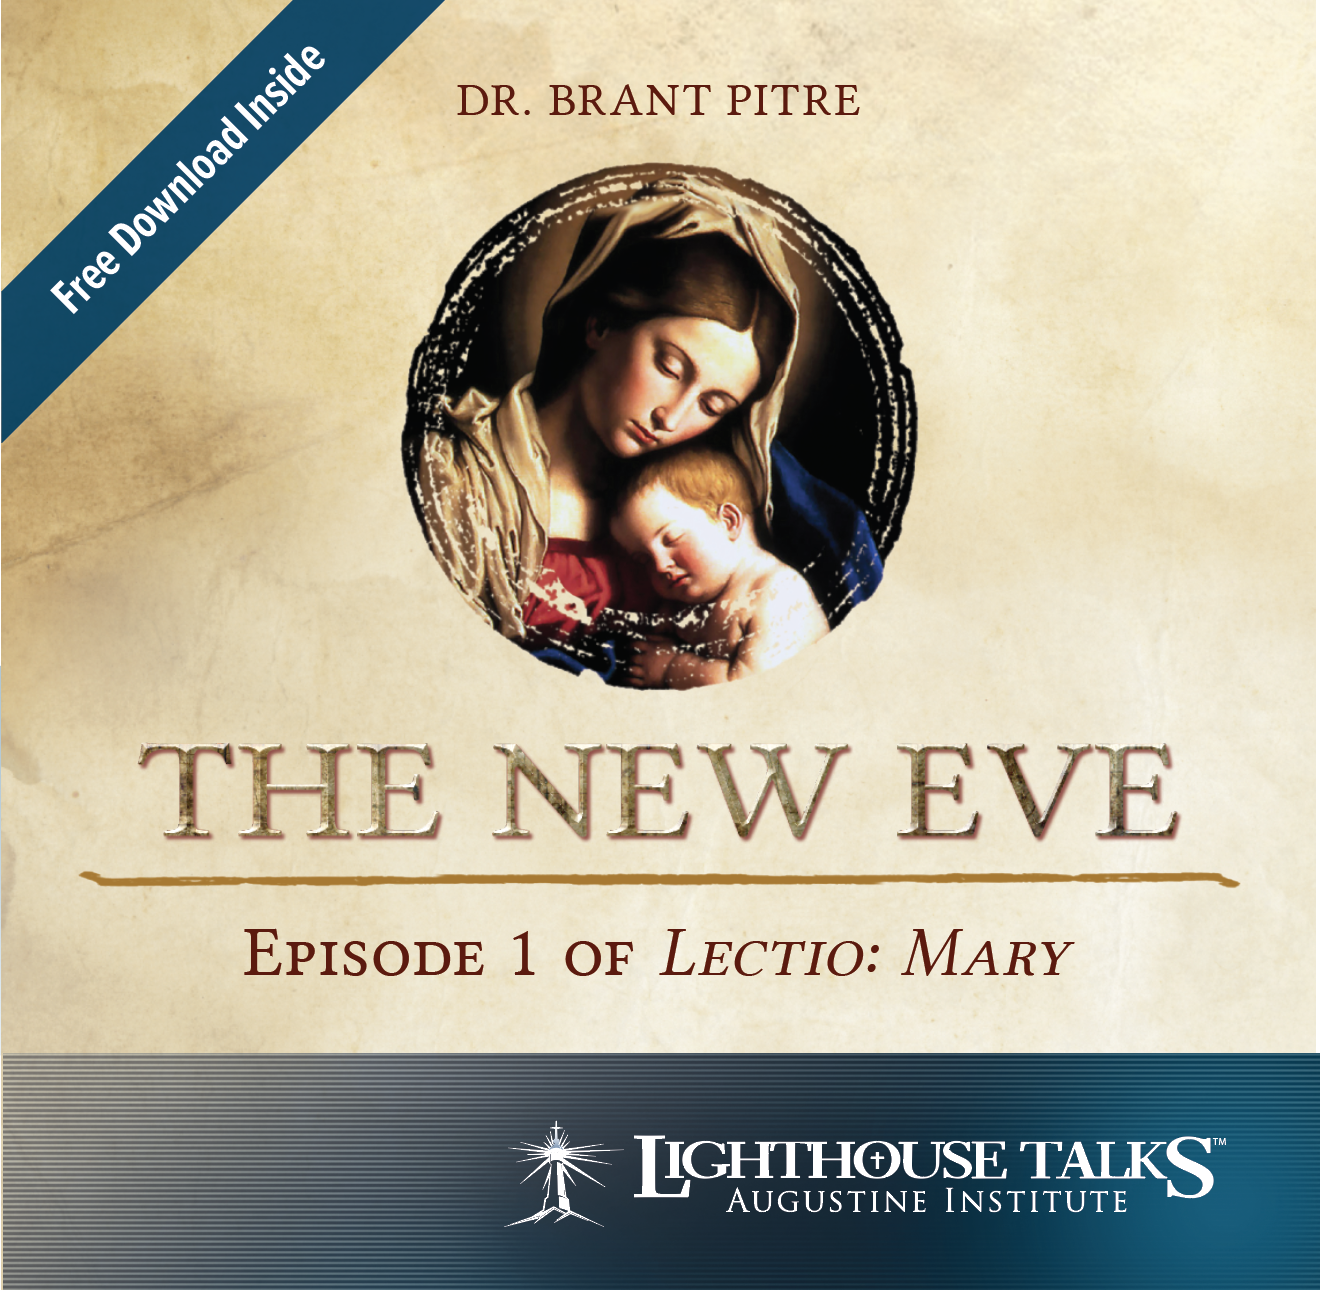 The New Eve: Episode 1 of Lectio: Mary